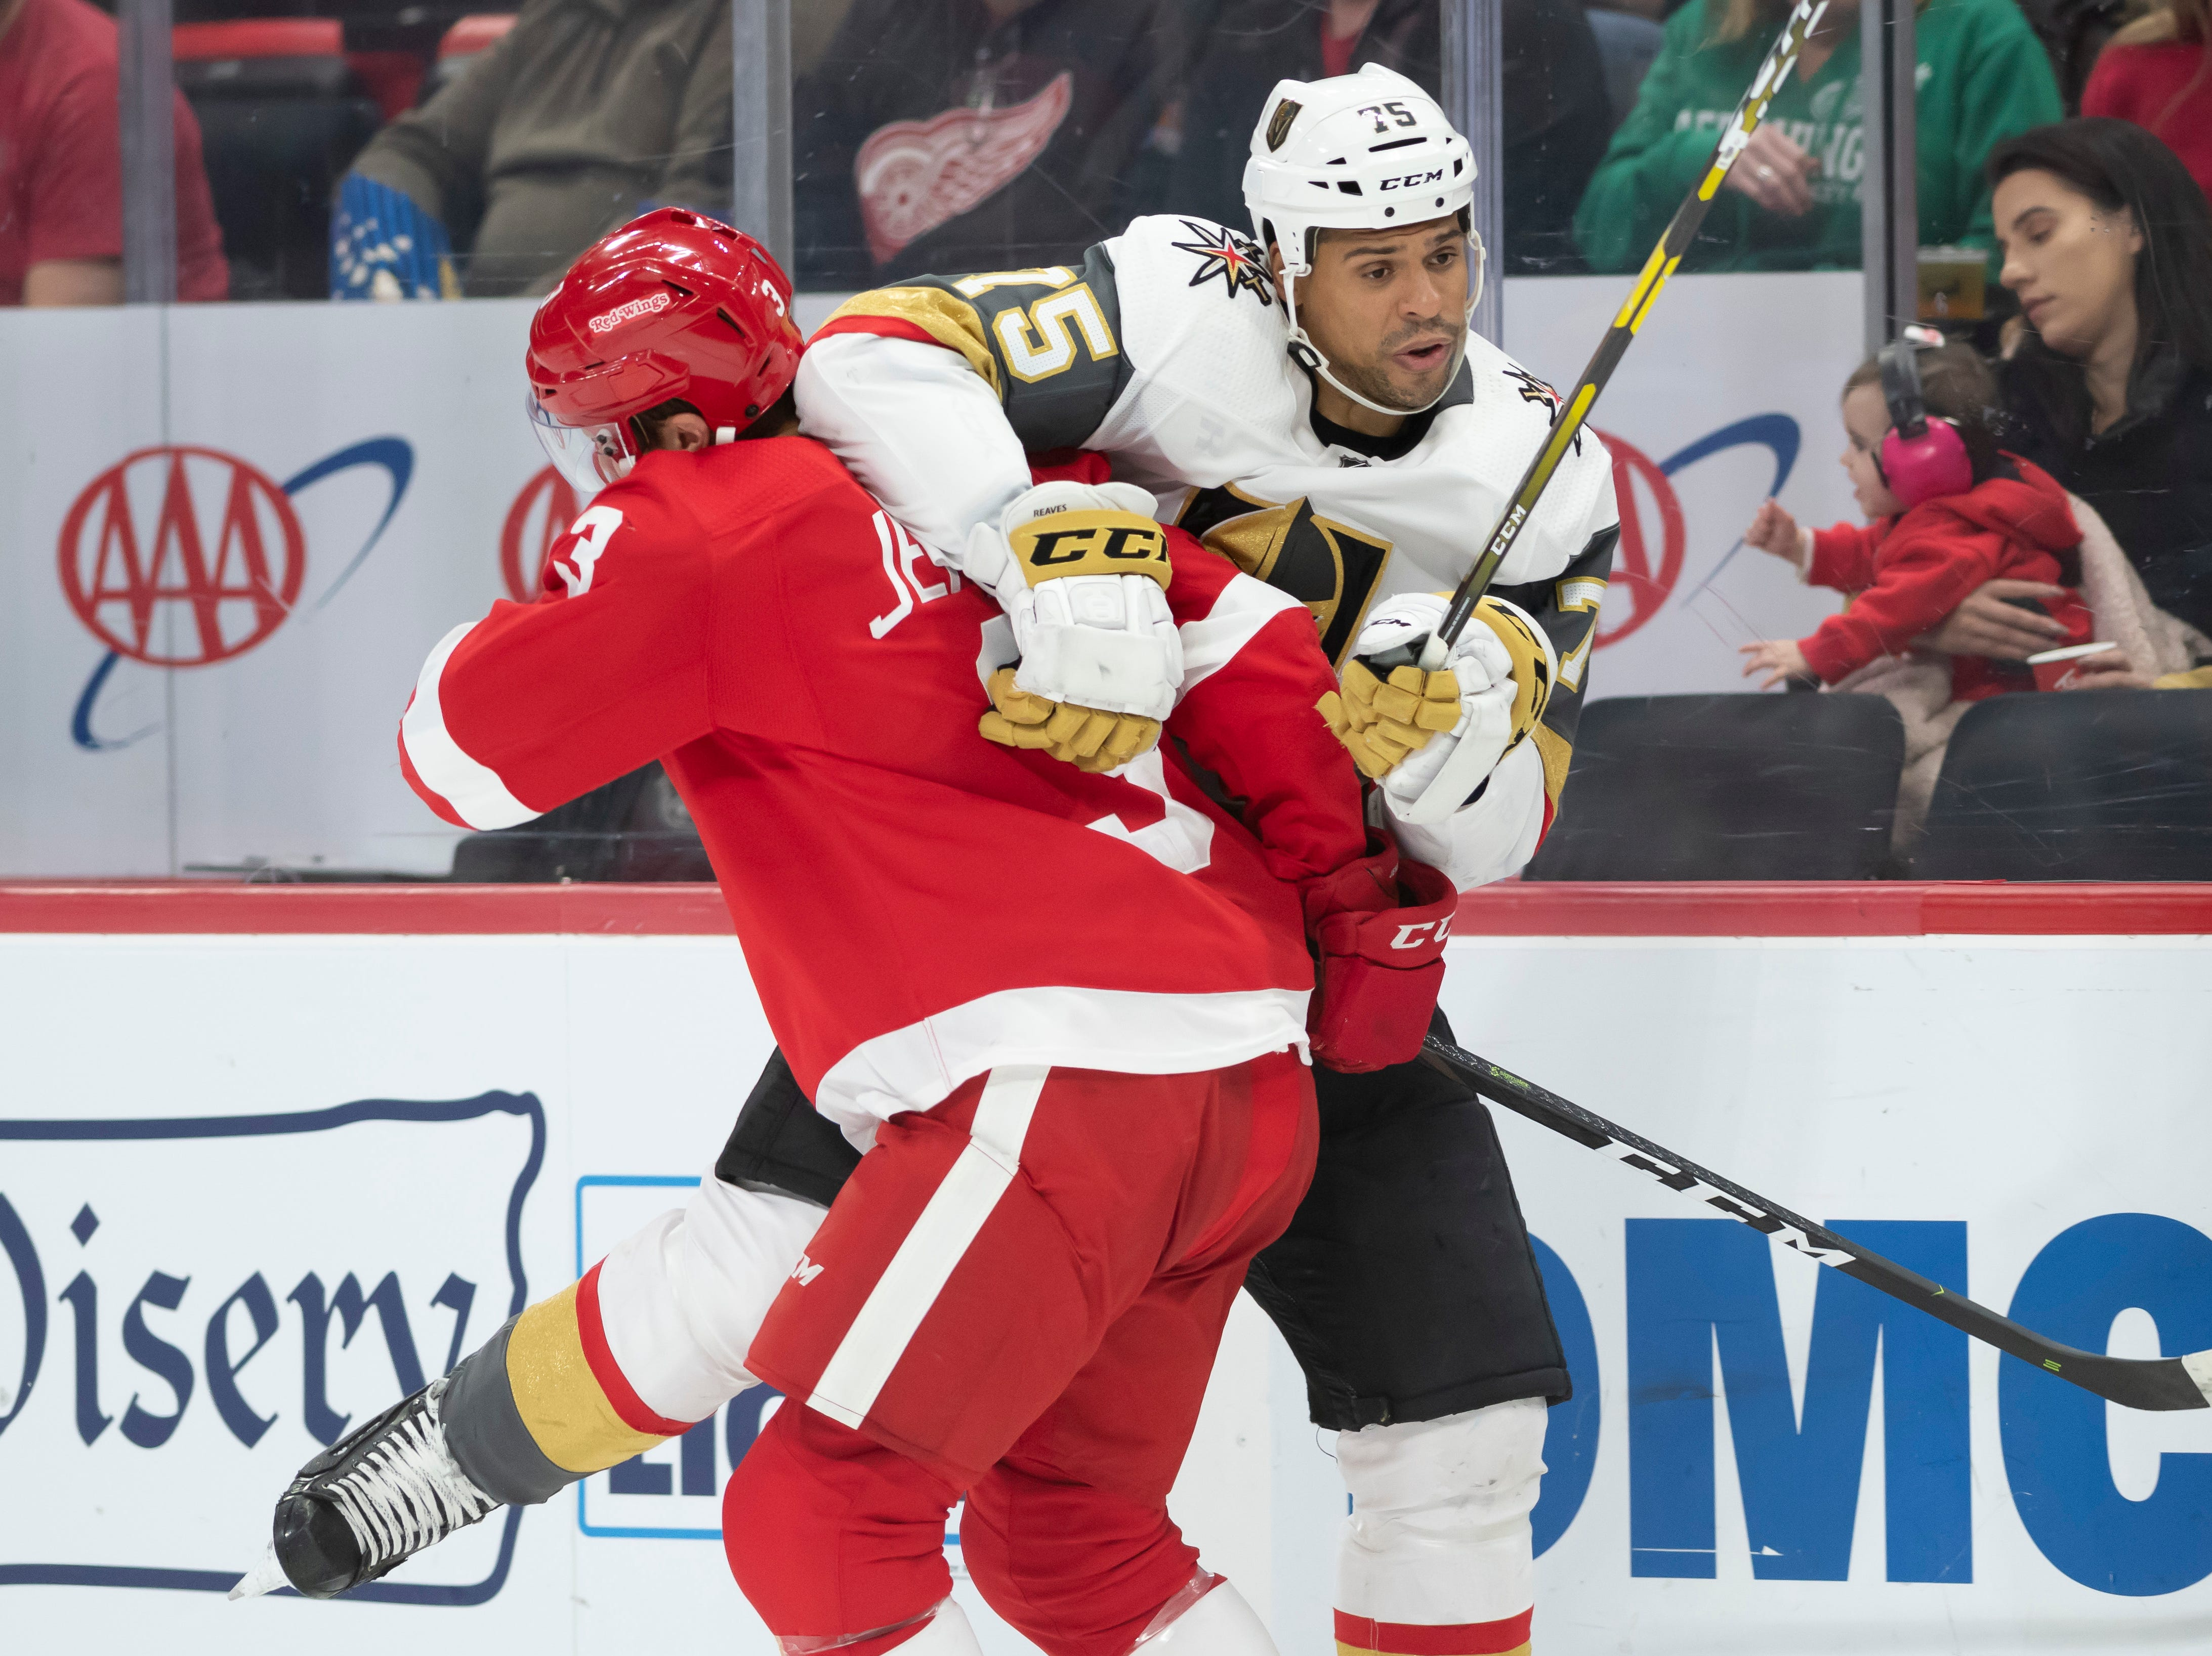 Detroit defenseman Nick Jensen and Vegas right wing Ryan Reaves get tangled up in the second period.